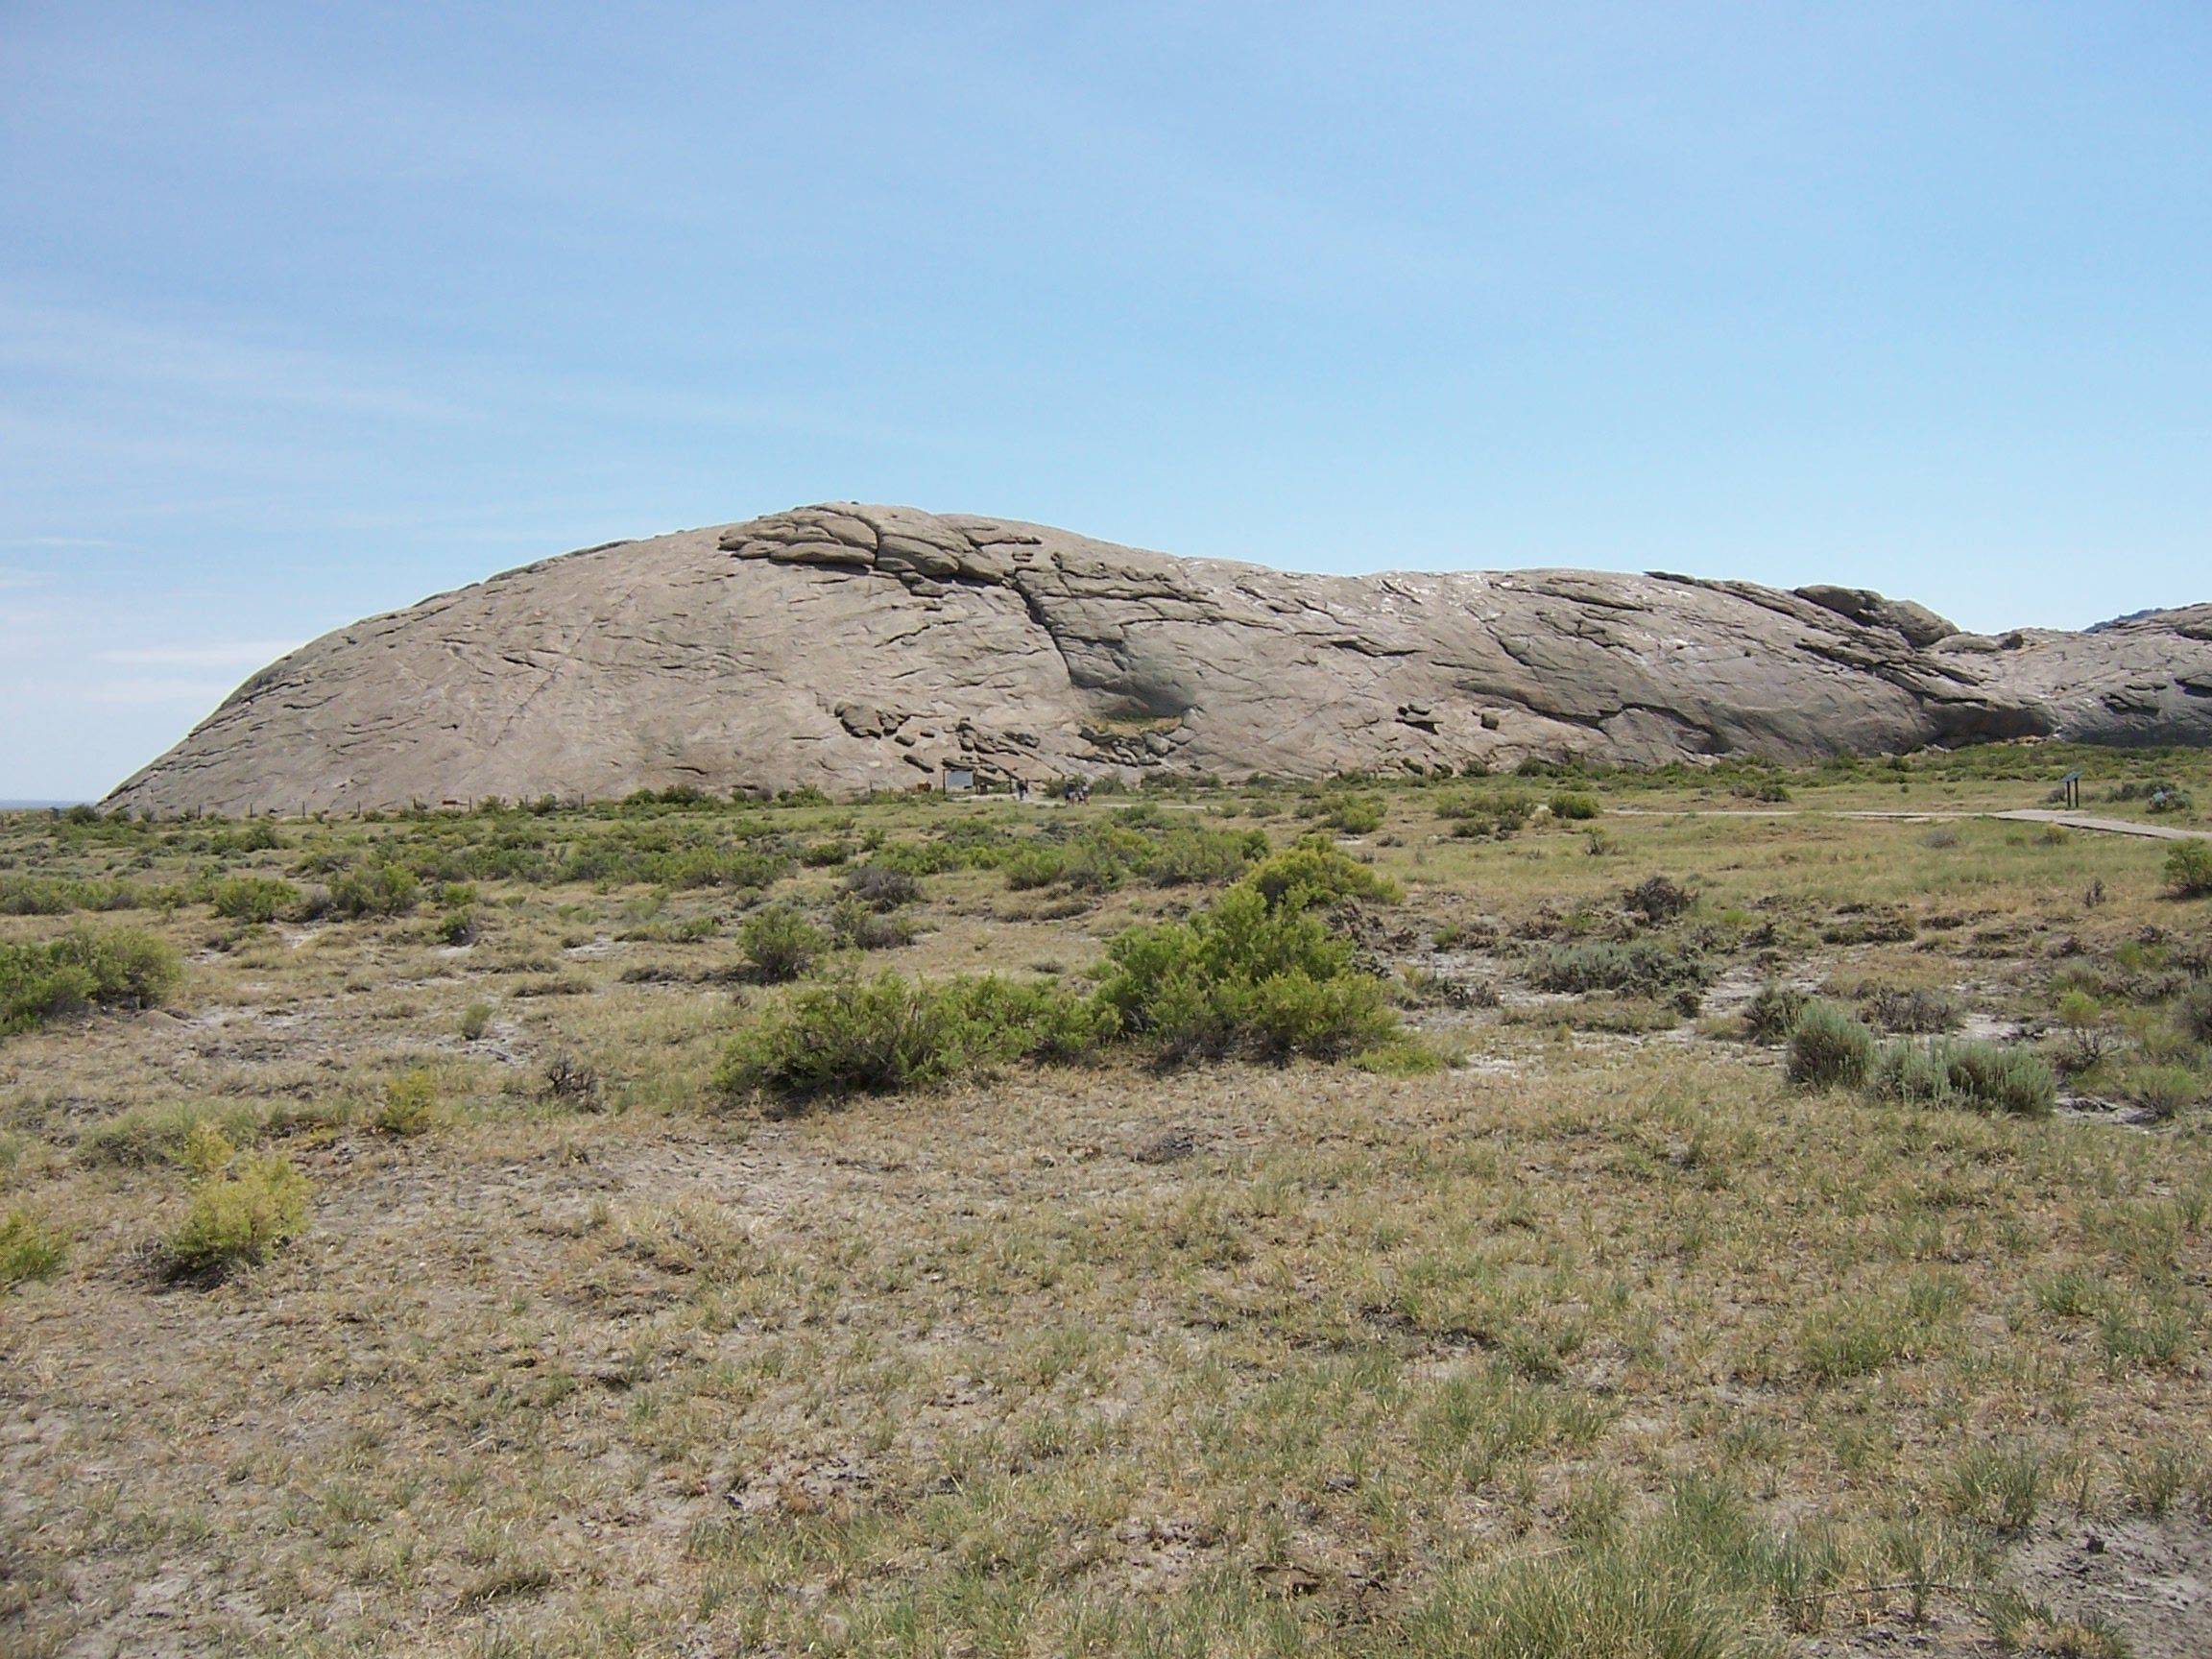 Independence rock on the oregon california trail now in